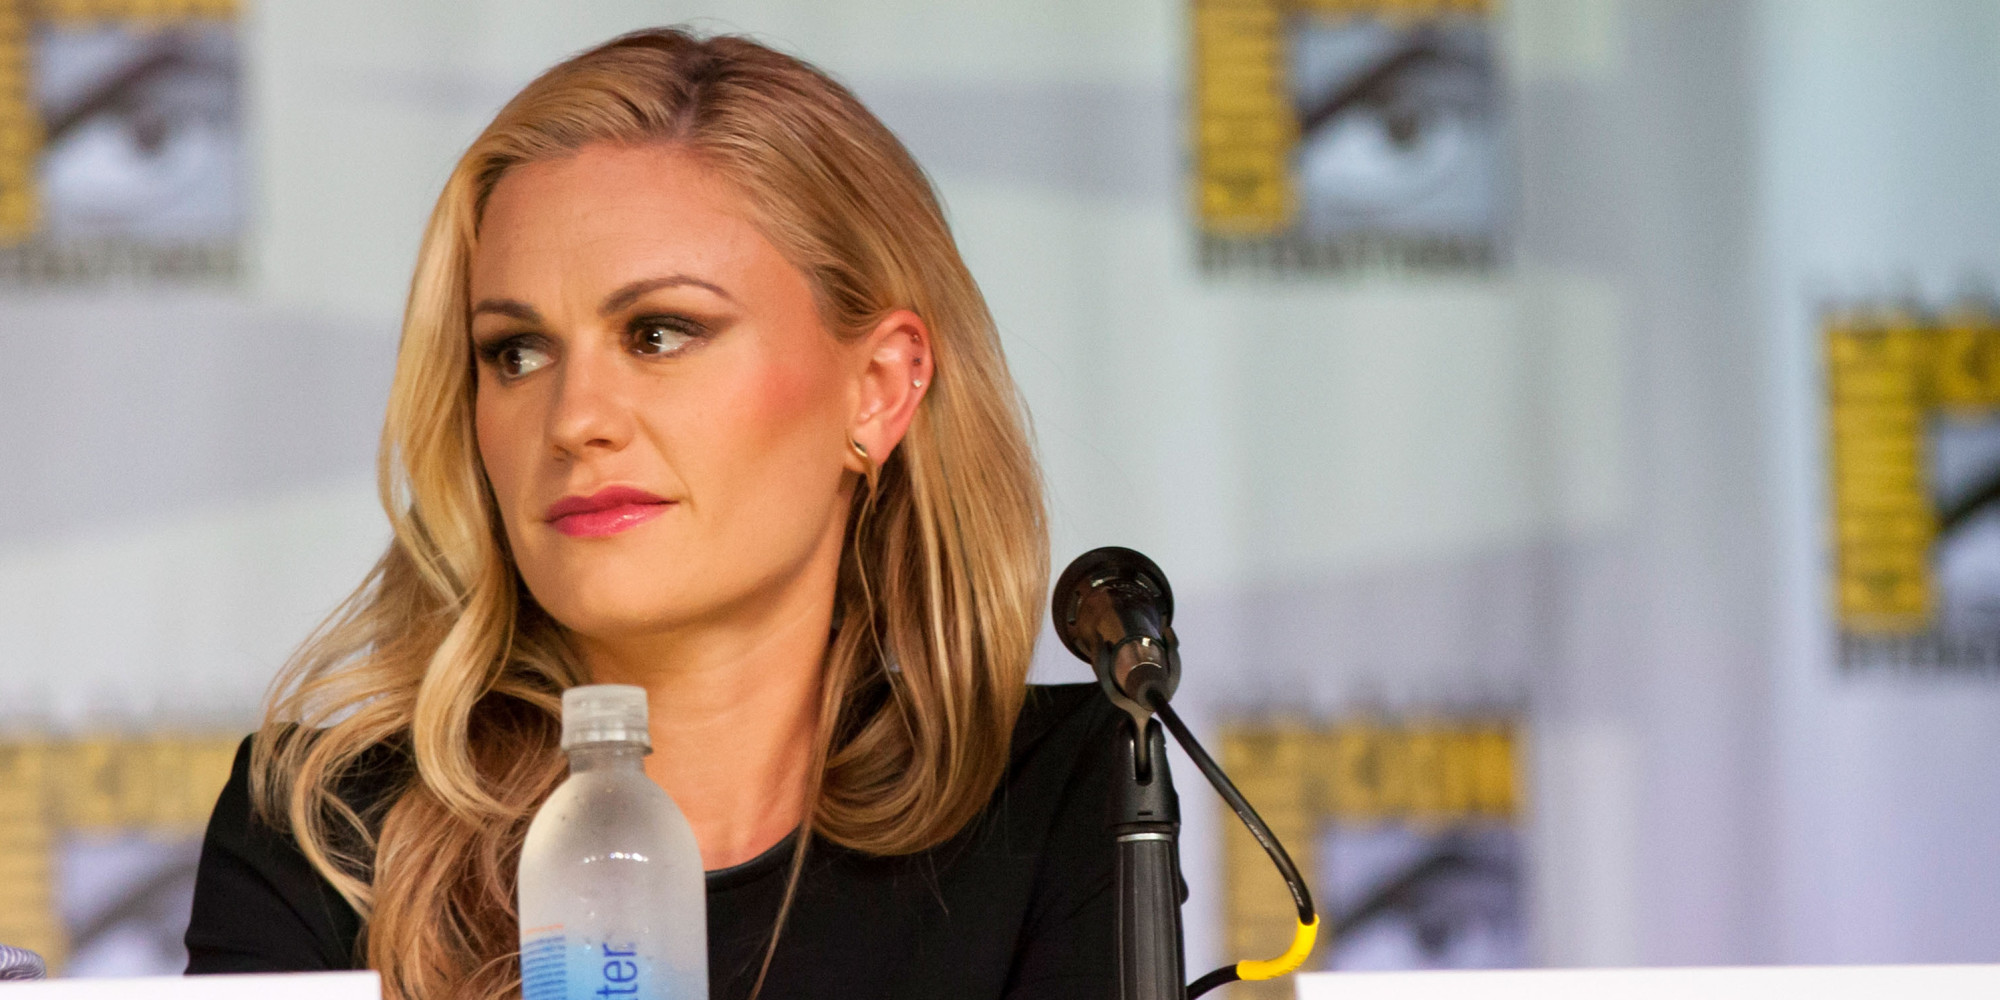 Anna Paquin's Rogue Cut From 'X-Men: Days Of Future Past'   HuffPost Anna Paquin